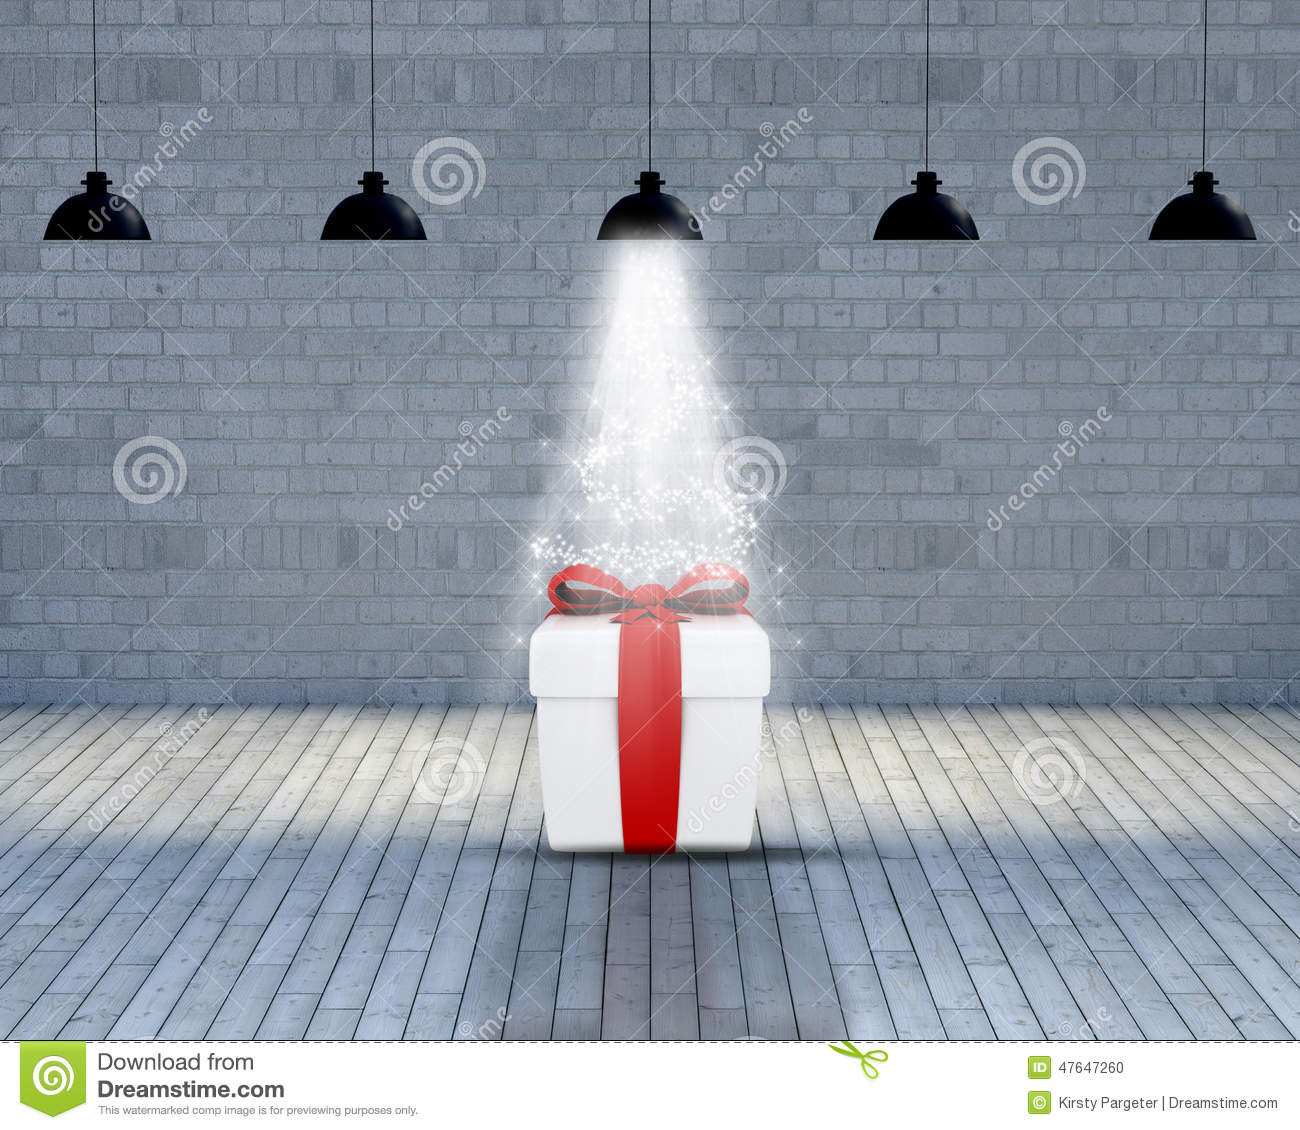 Empty room with Christmas gift